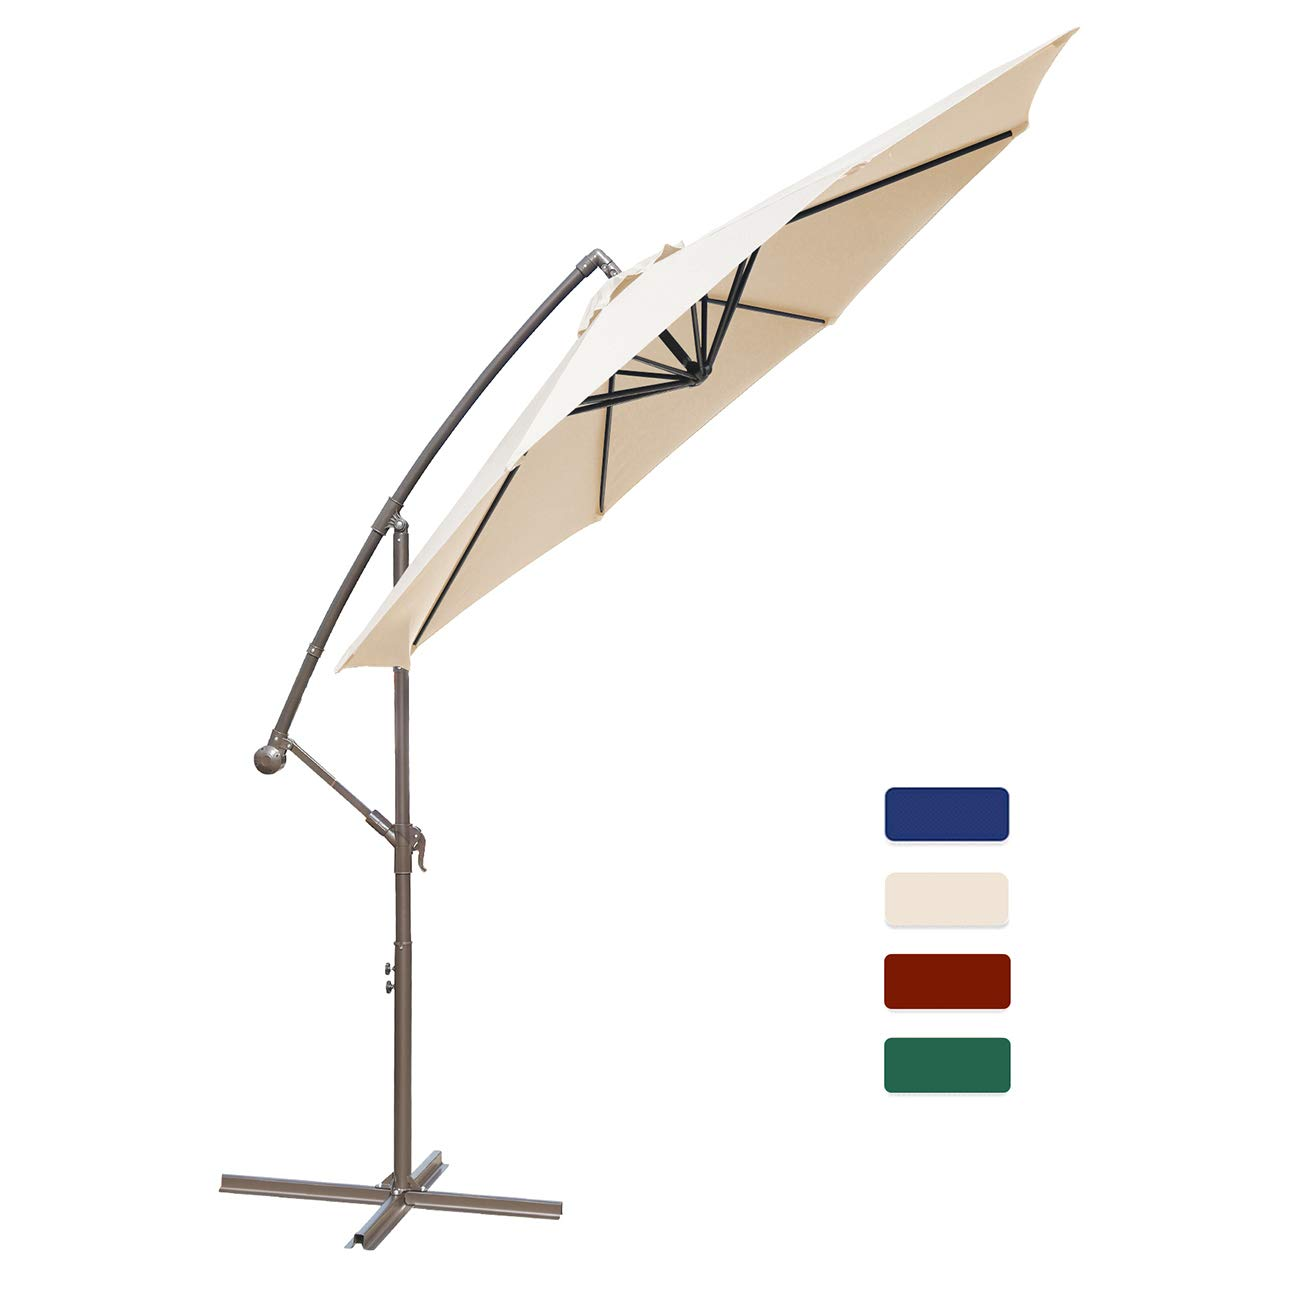 HASLE OUTFITTERS Offset Patio Umbrella 10FT Cantilever Umbrella Outdoor Market Umbrella Hanging Umbrella with Cross Base Beige by HASLE OUTFITTERS